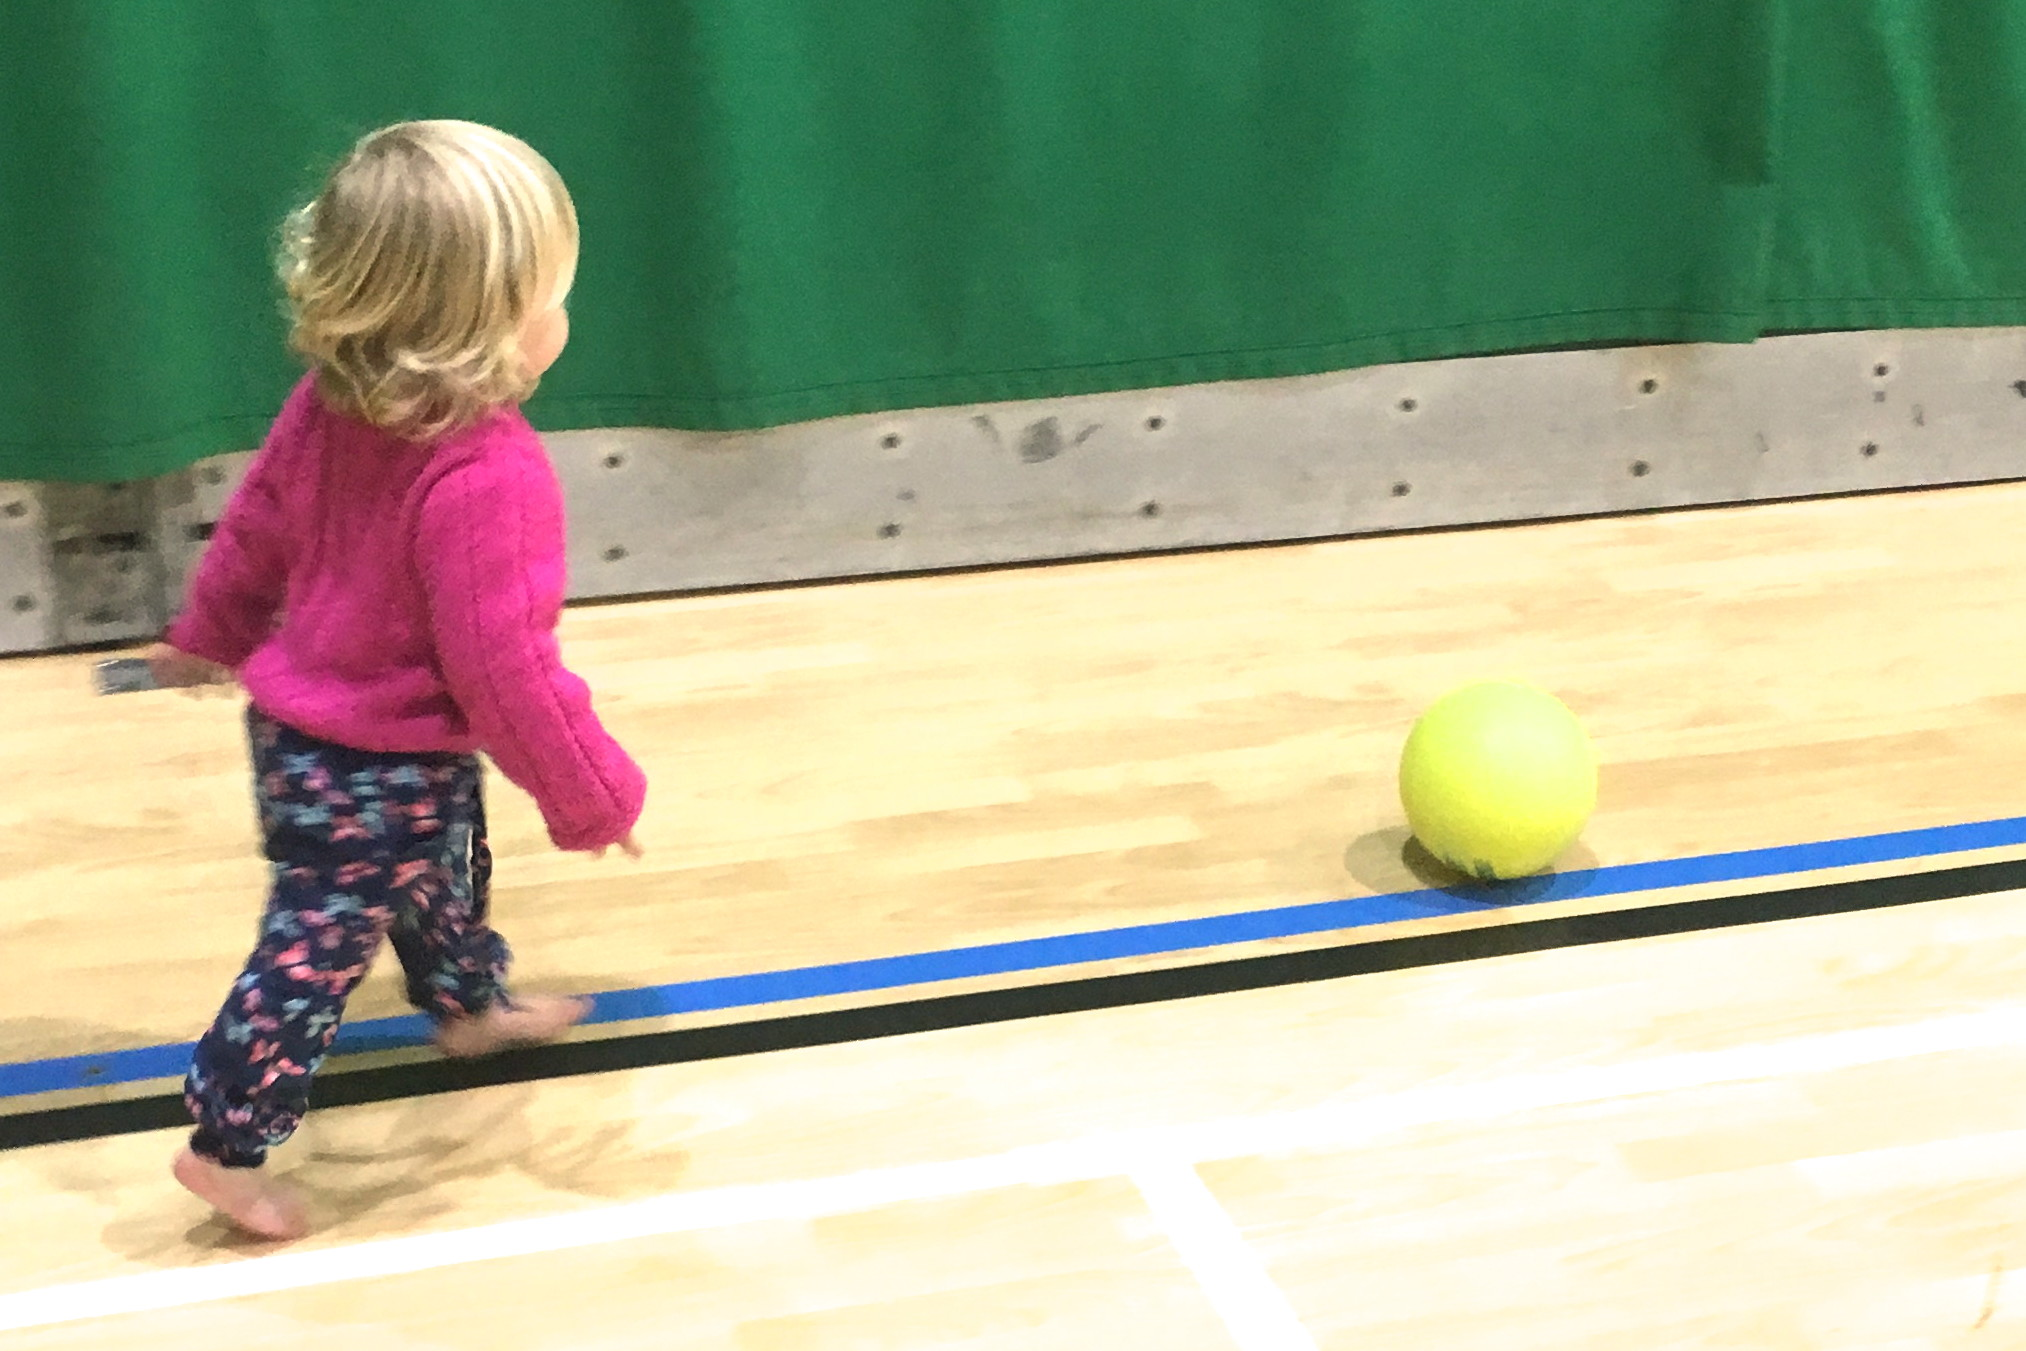 18 month old girl chasing ball in sports hall